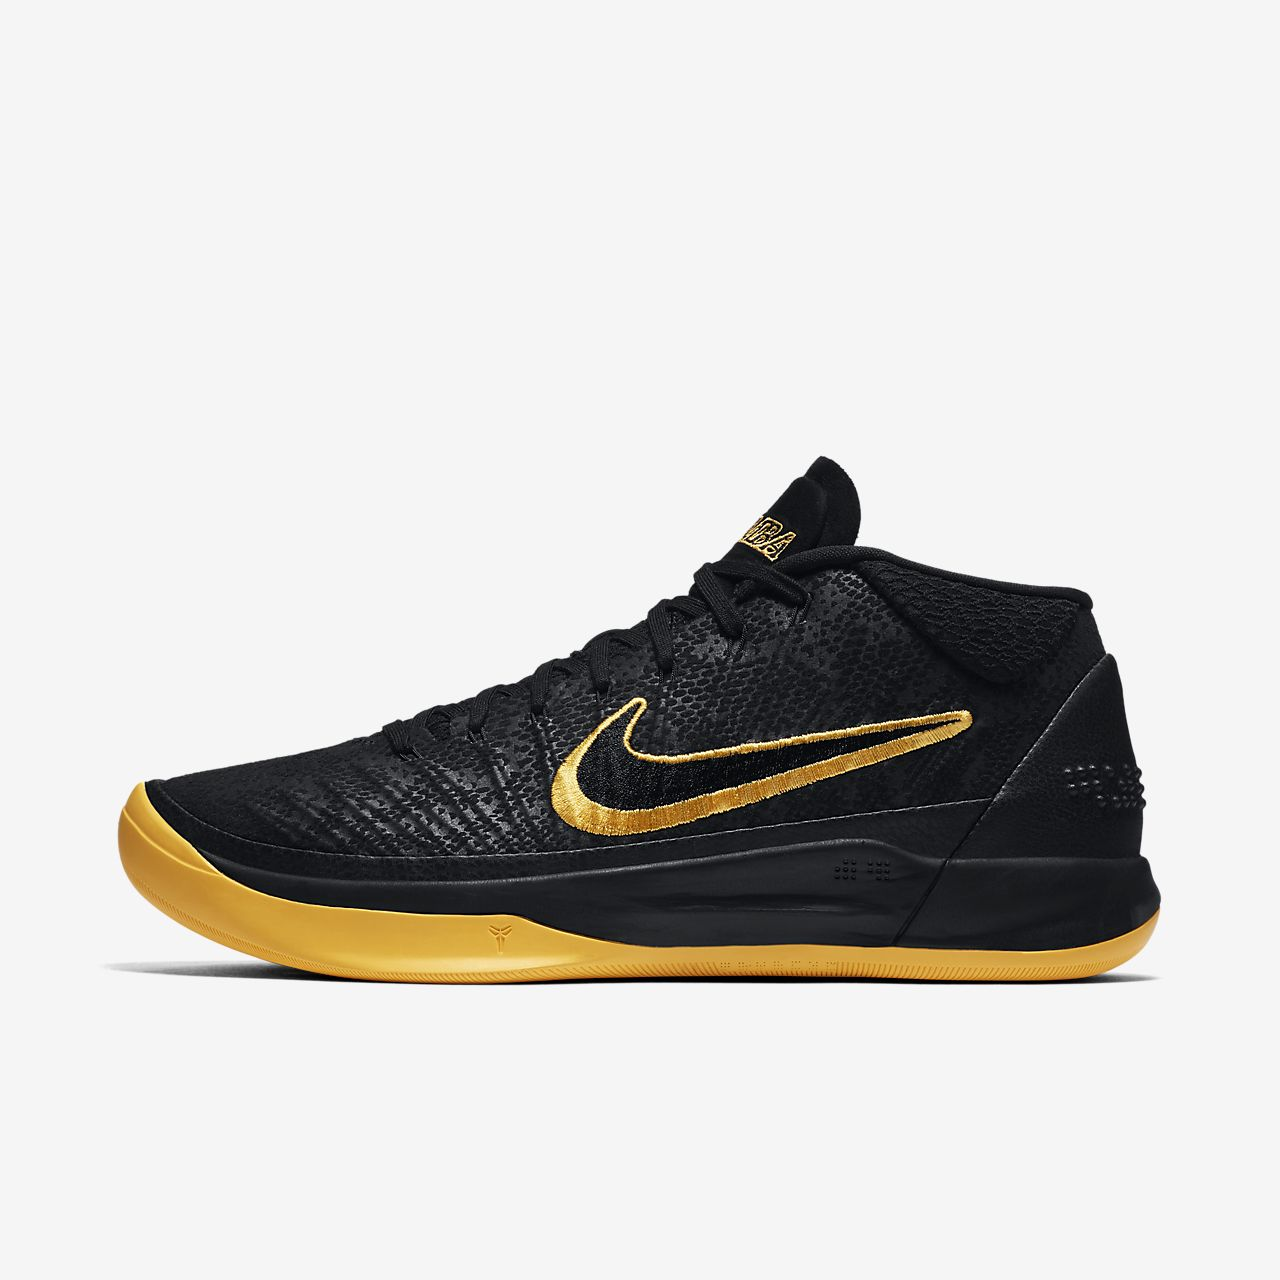 official photos a6163 c5979 Nike Kobe Ad  Buy Nike Shoes  Sneakers - Bluelilyandblue.com